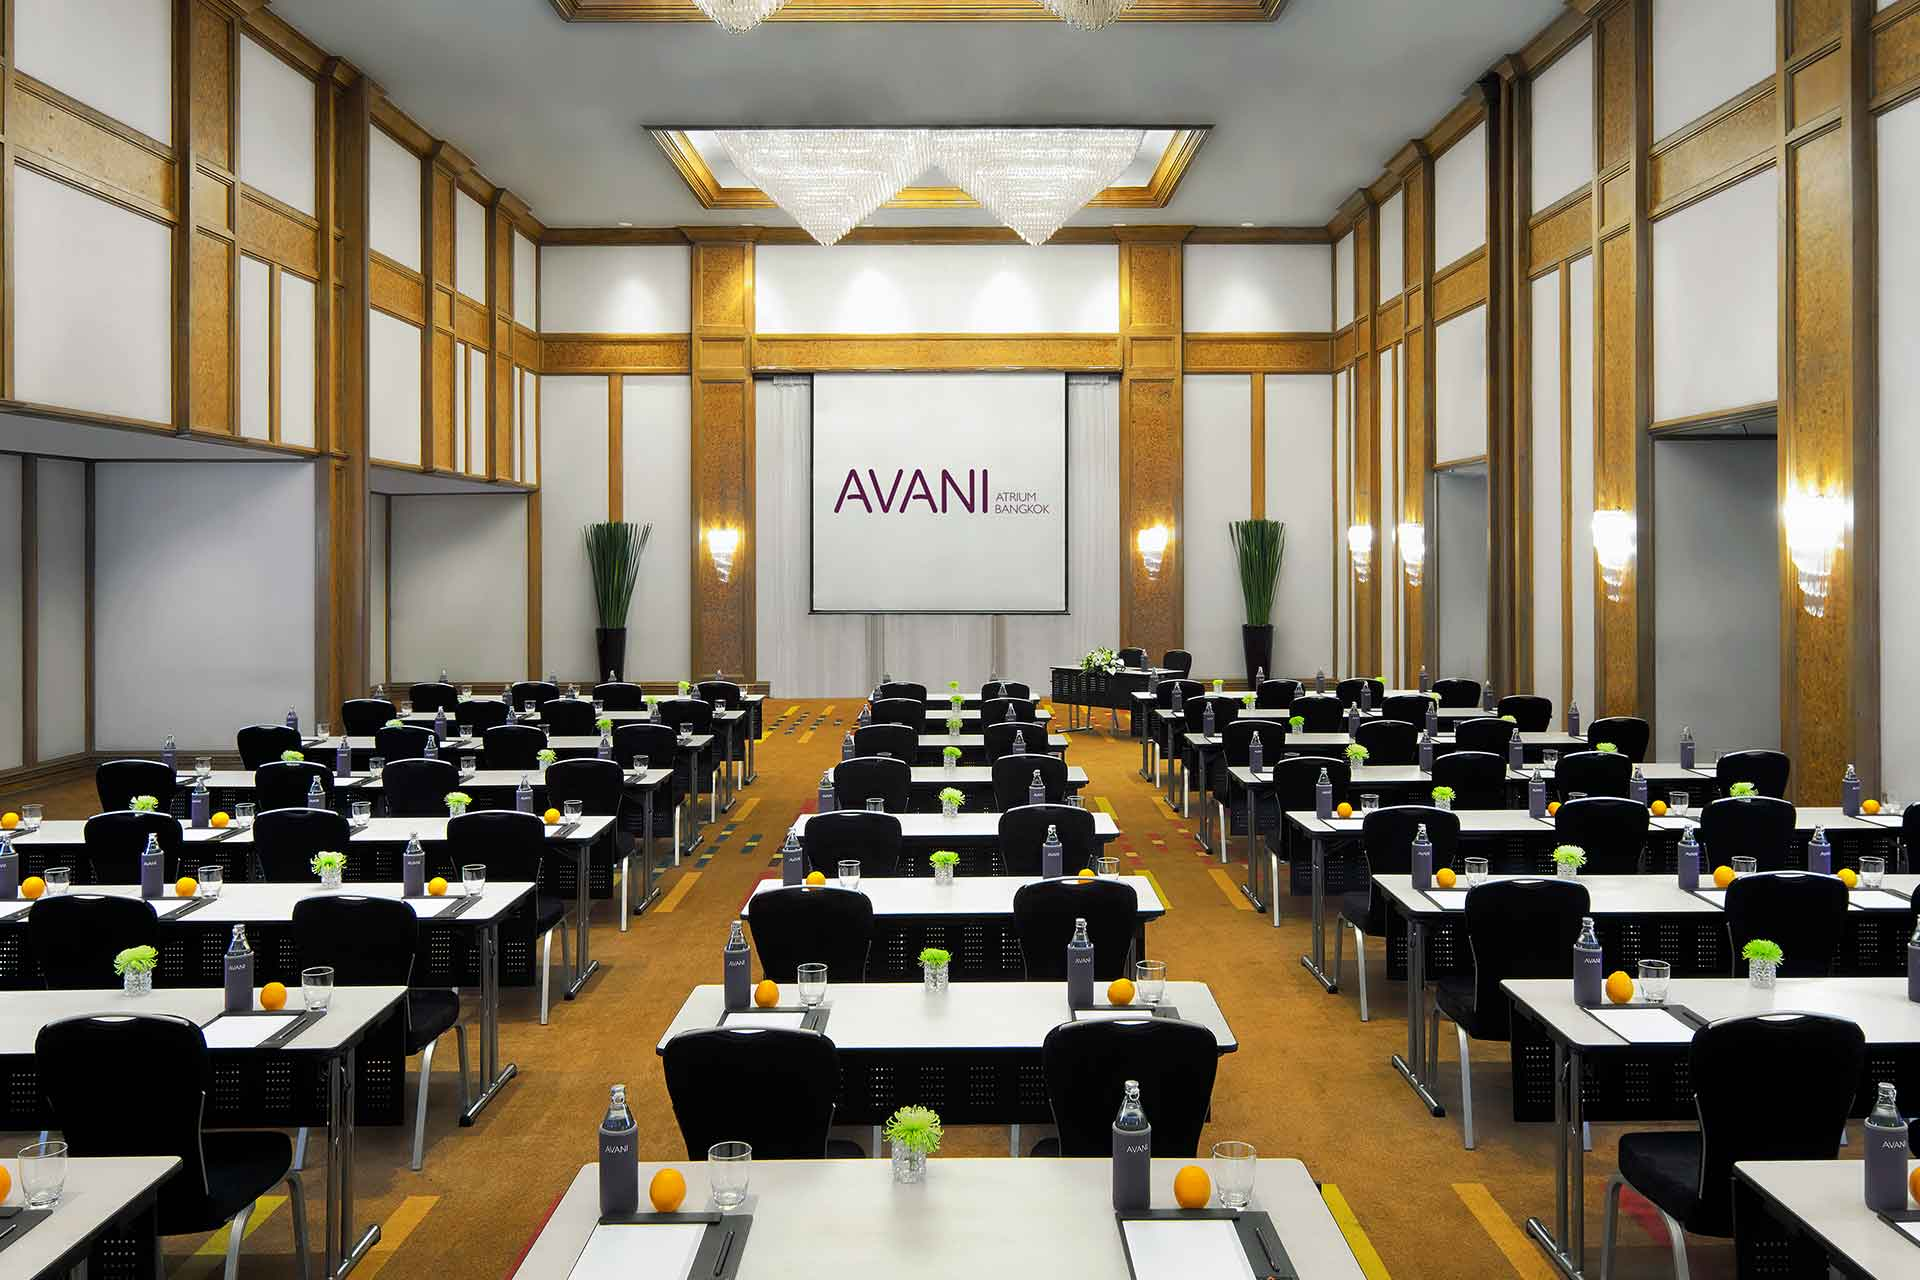 Interior of a meeting room at AVANI Atrium